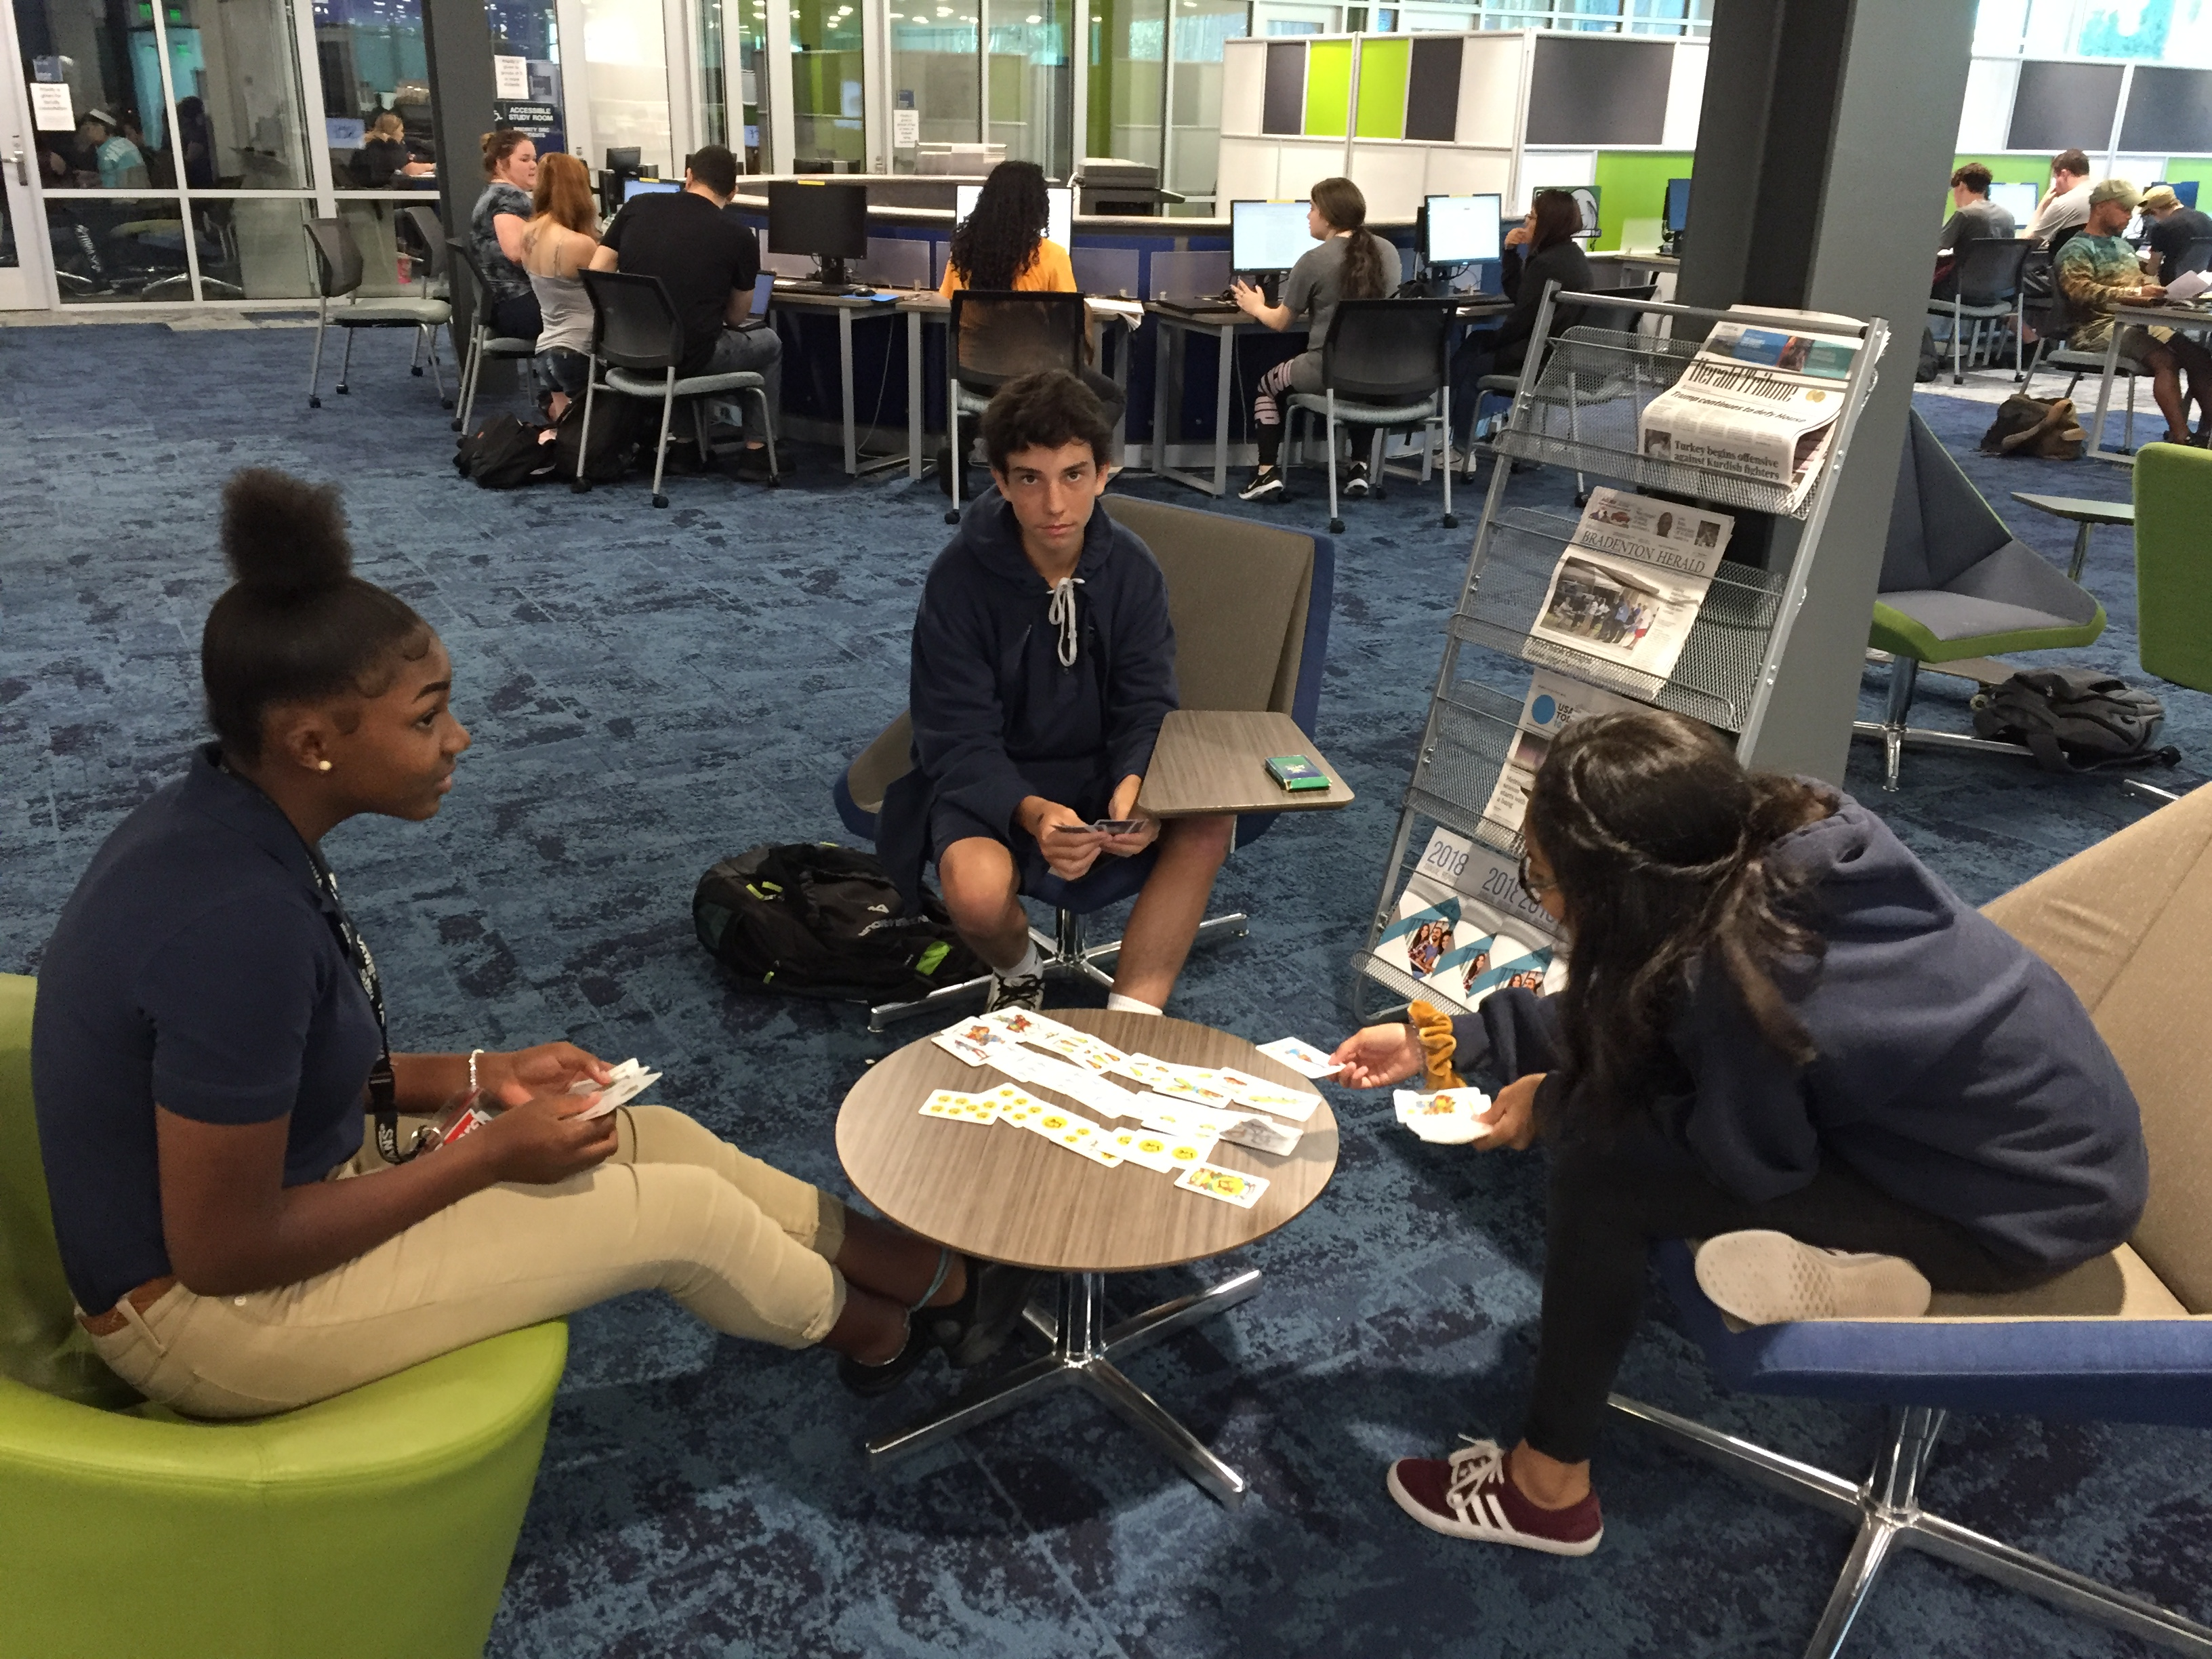 Students playing Spanish card game